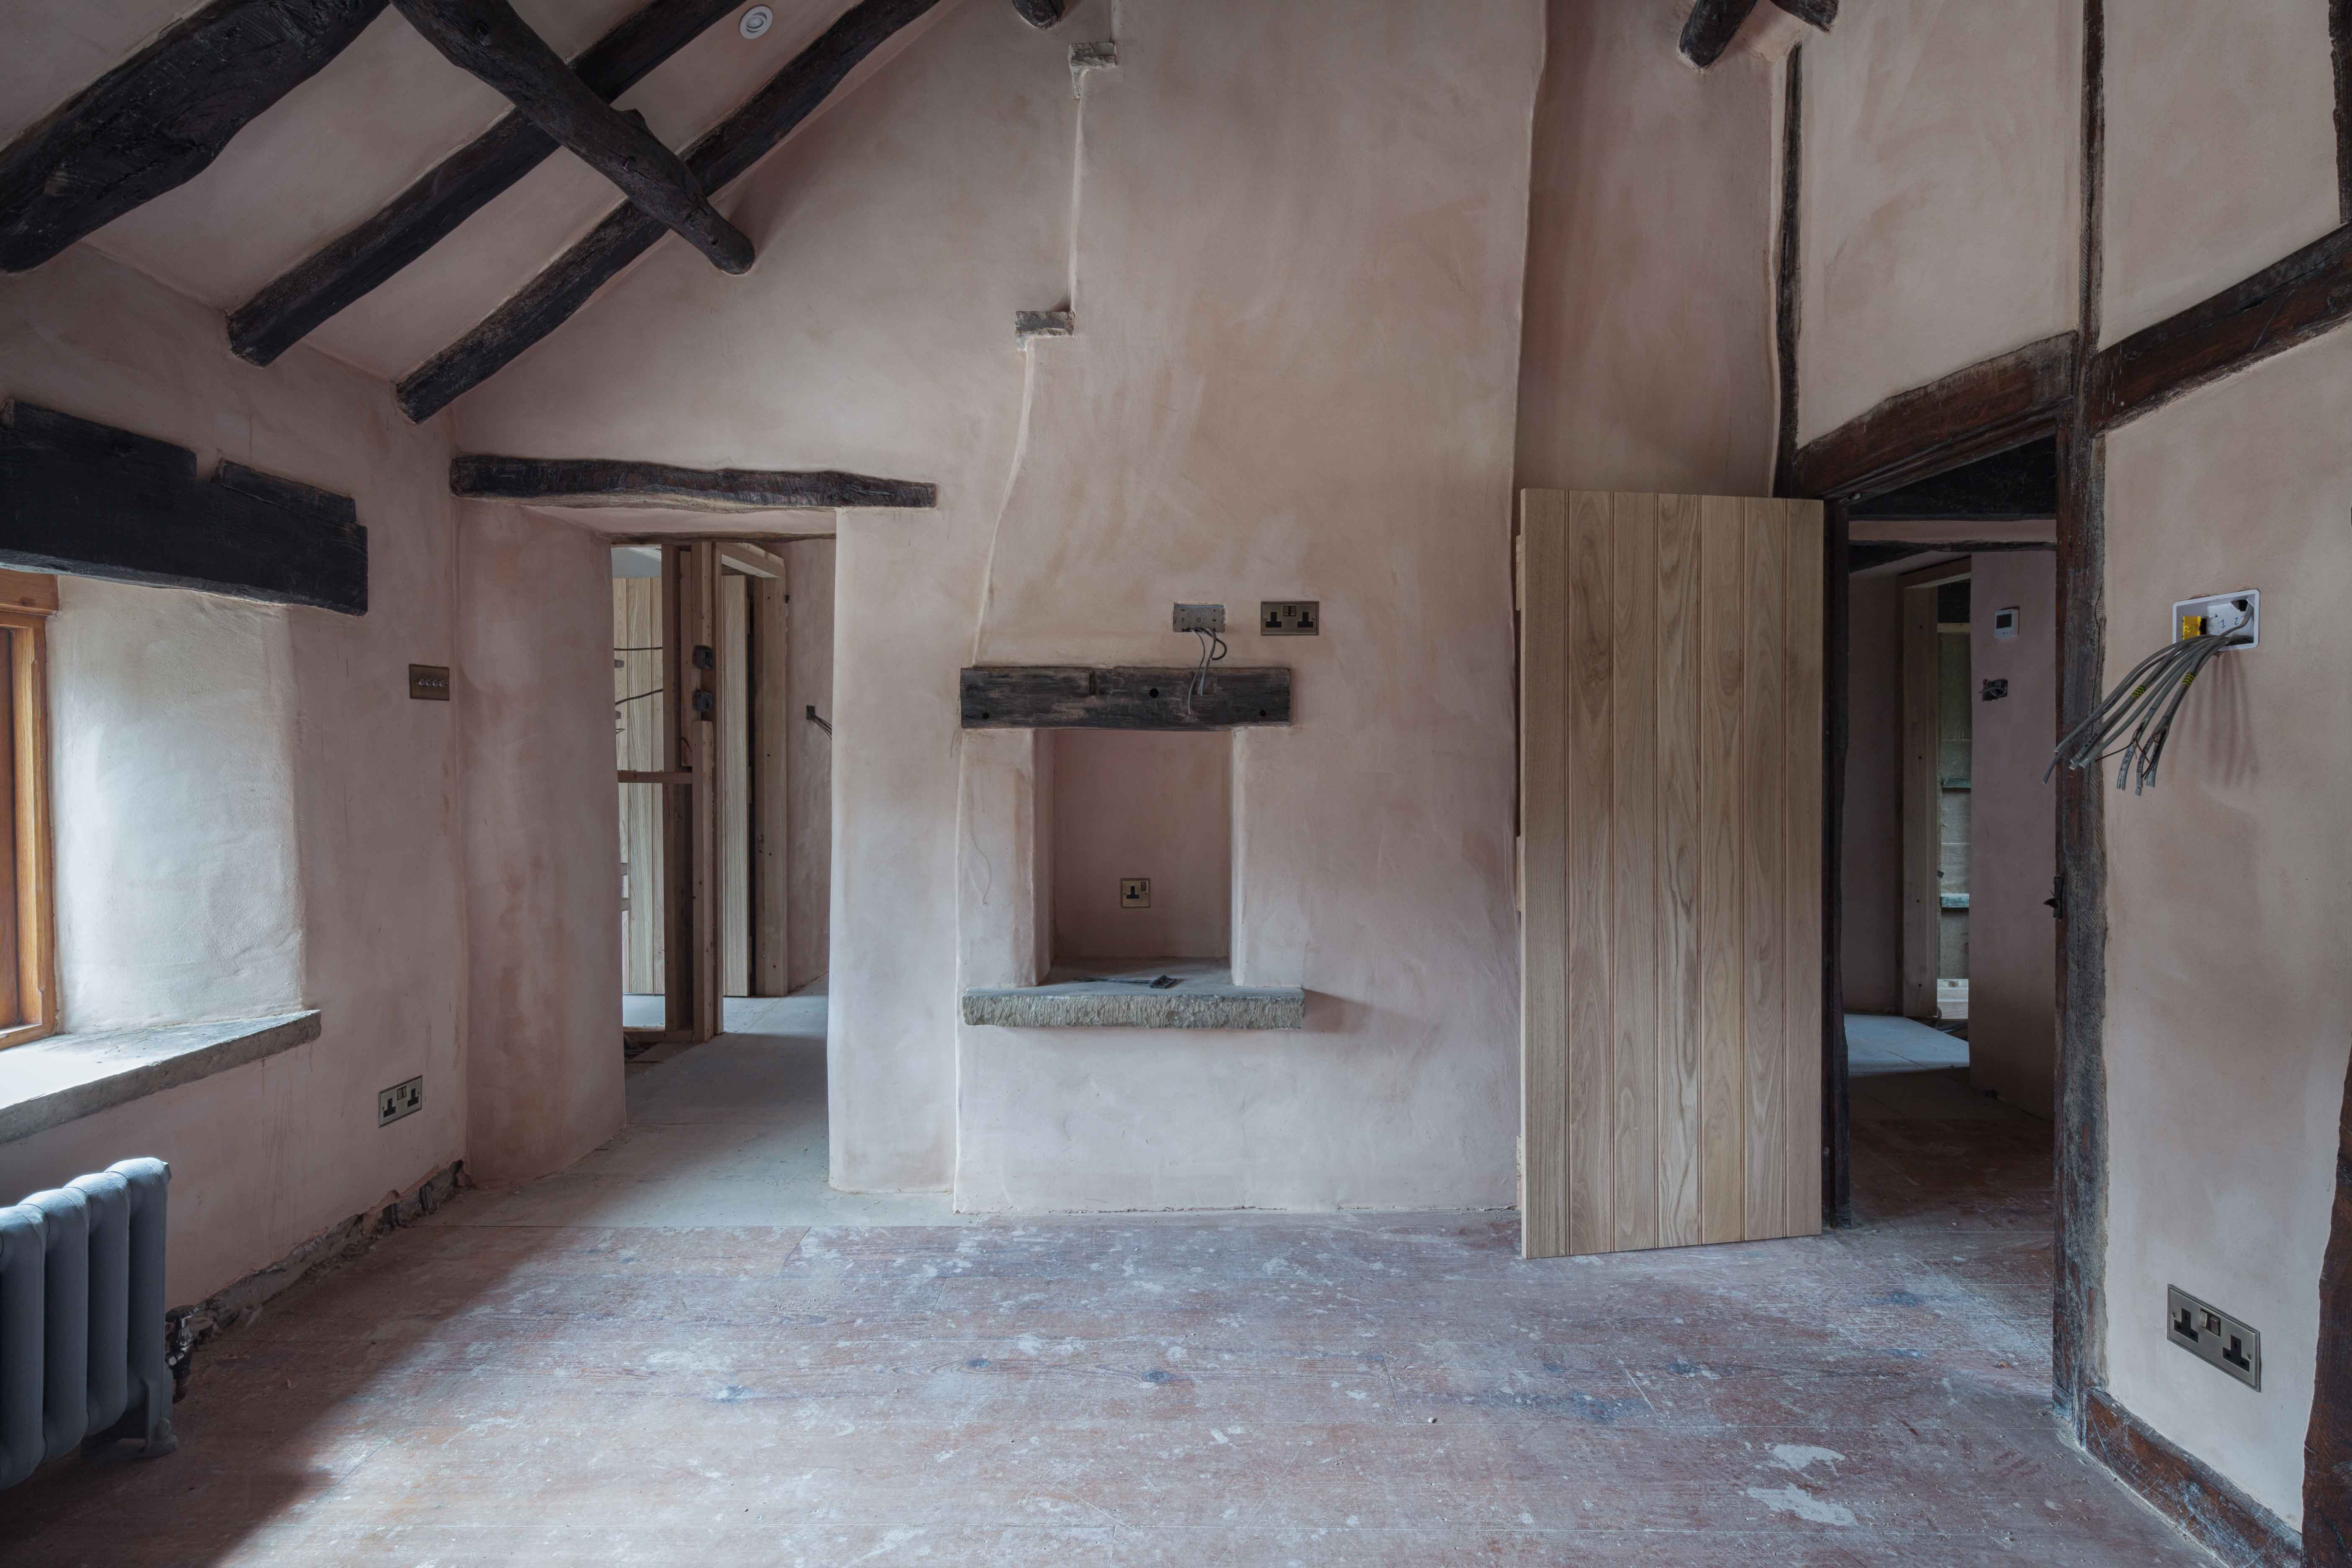 Abode Builders – A complete refurb of a rural farm house